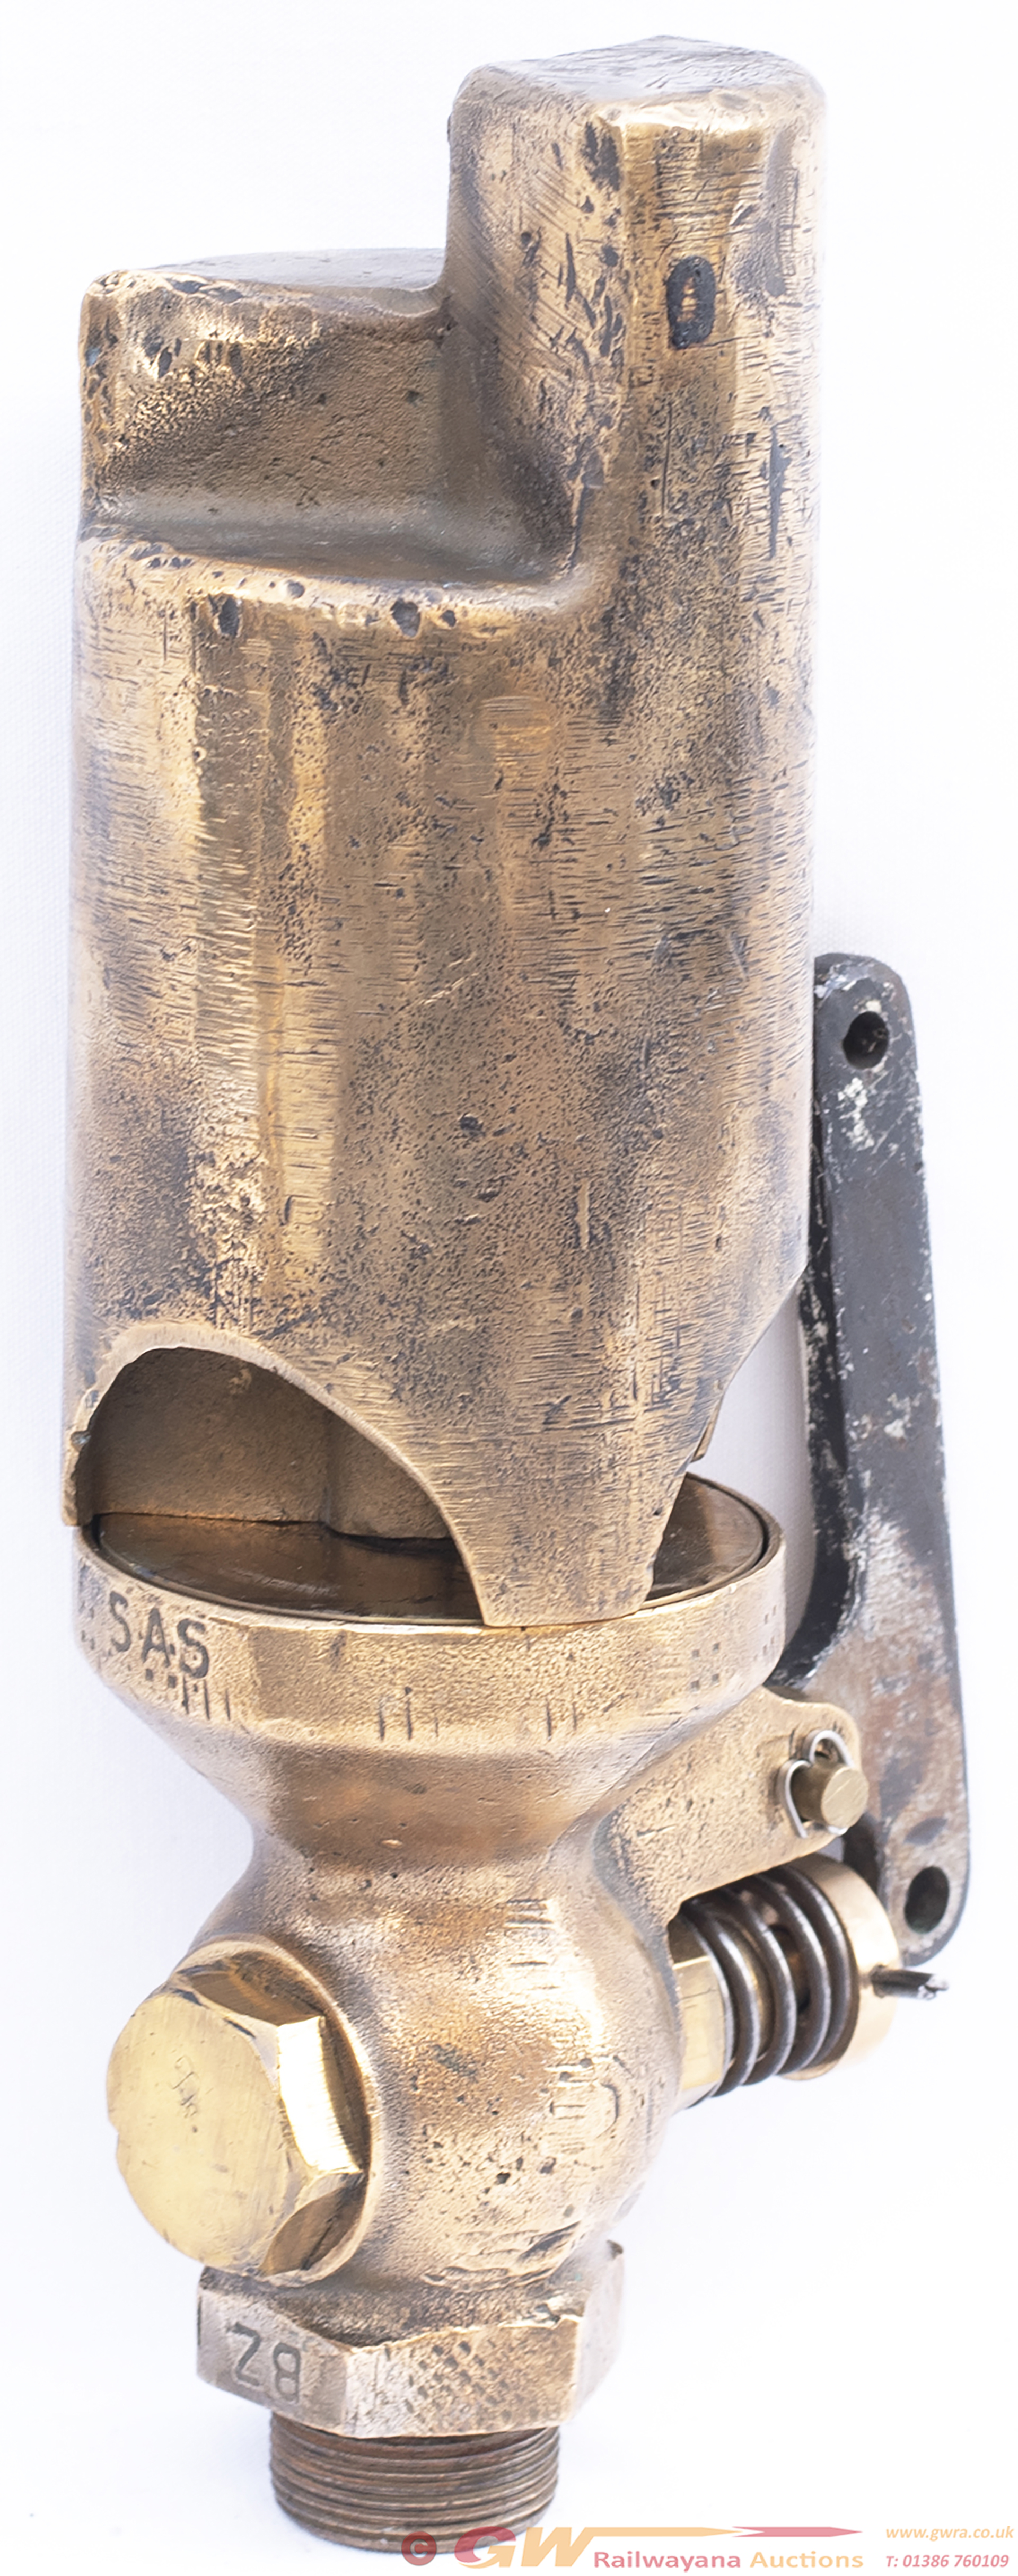 South African Railways 3 Tone Chime Whistle